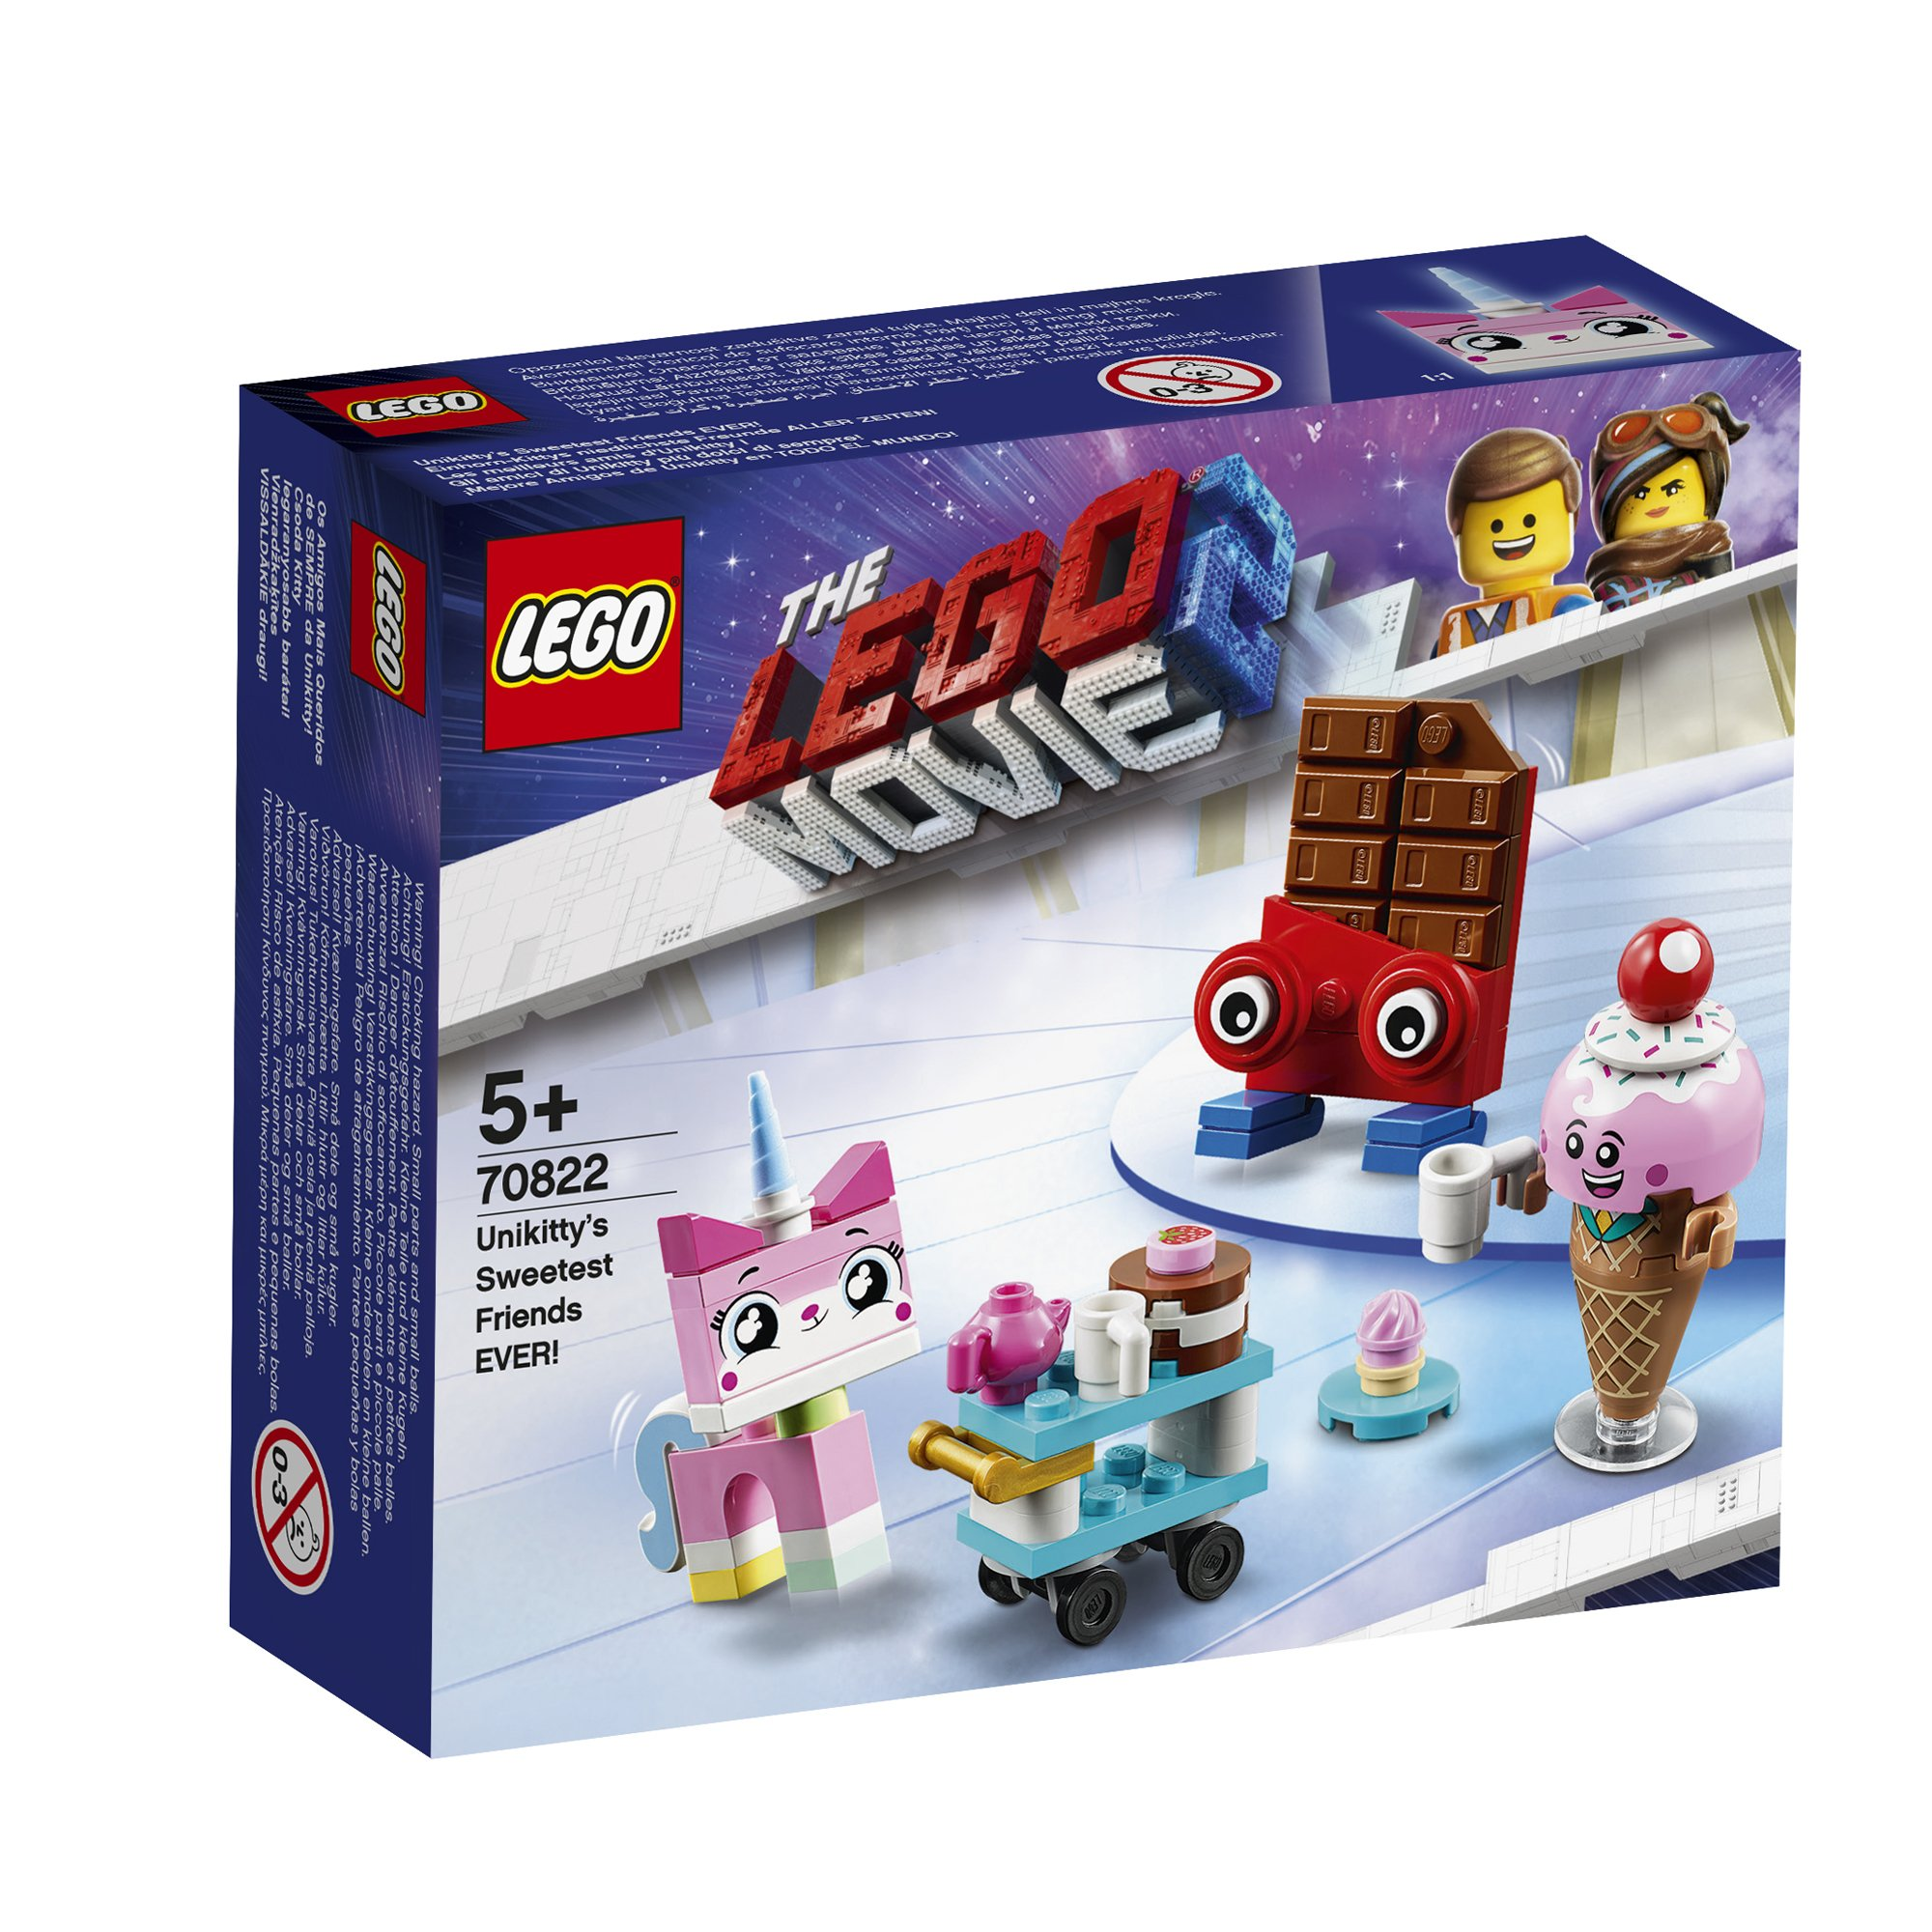 LEGO 樂高積木 LEGO Movie 樂高玩電影2系列 70822 Unikitty's Sweetest Friends EVER!